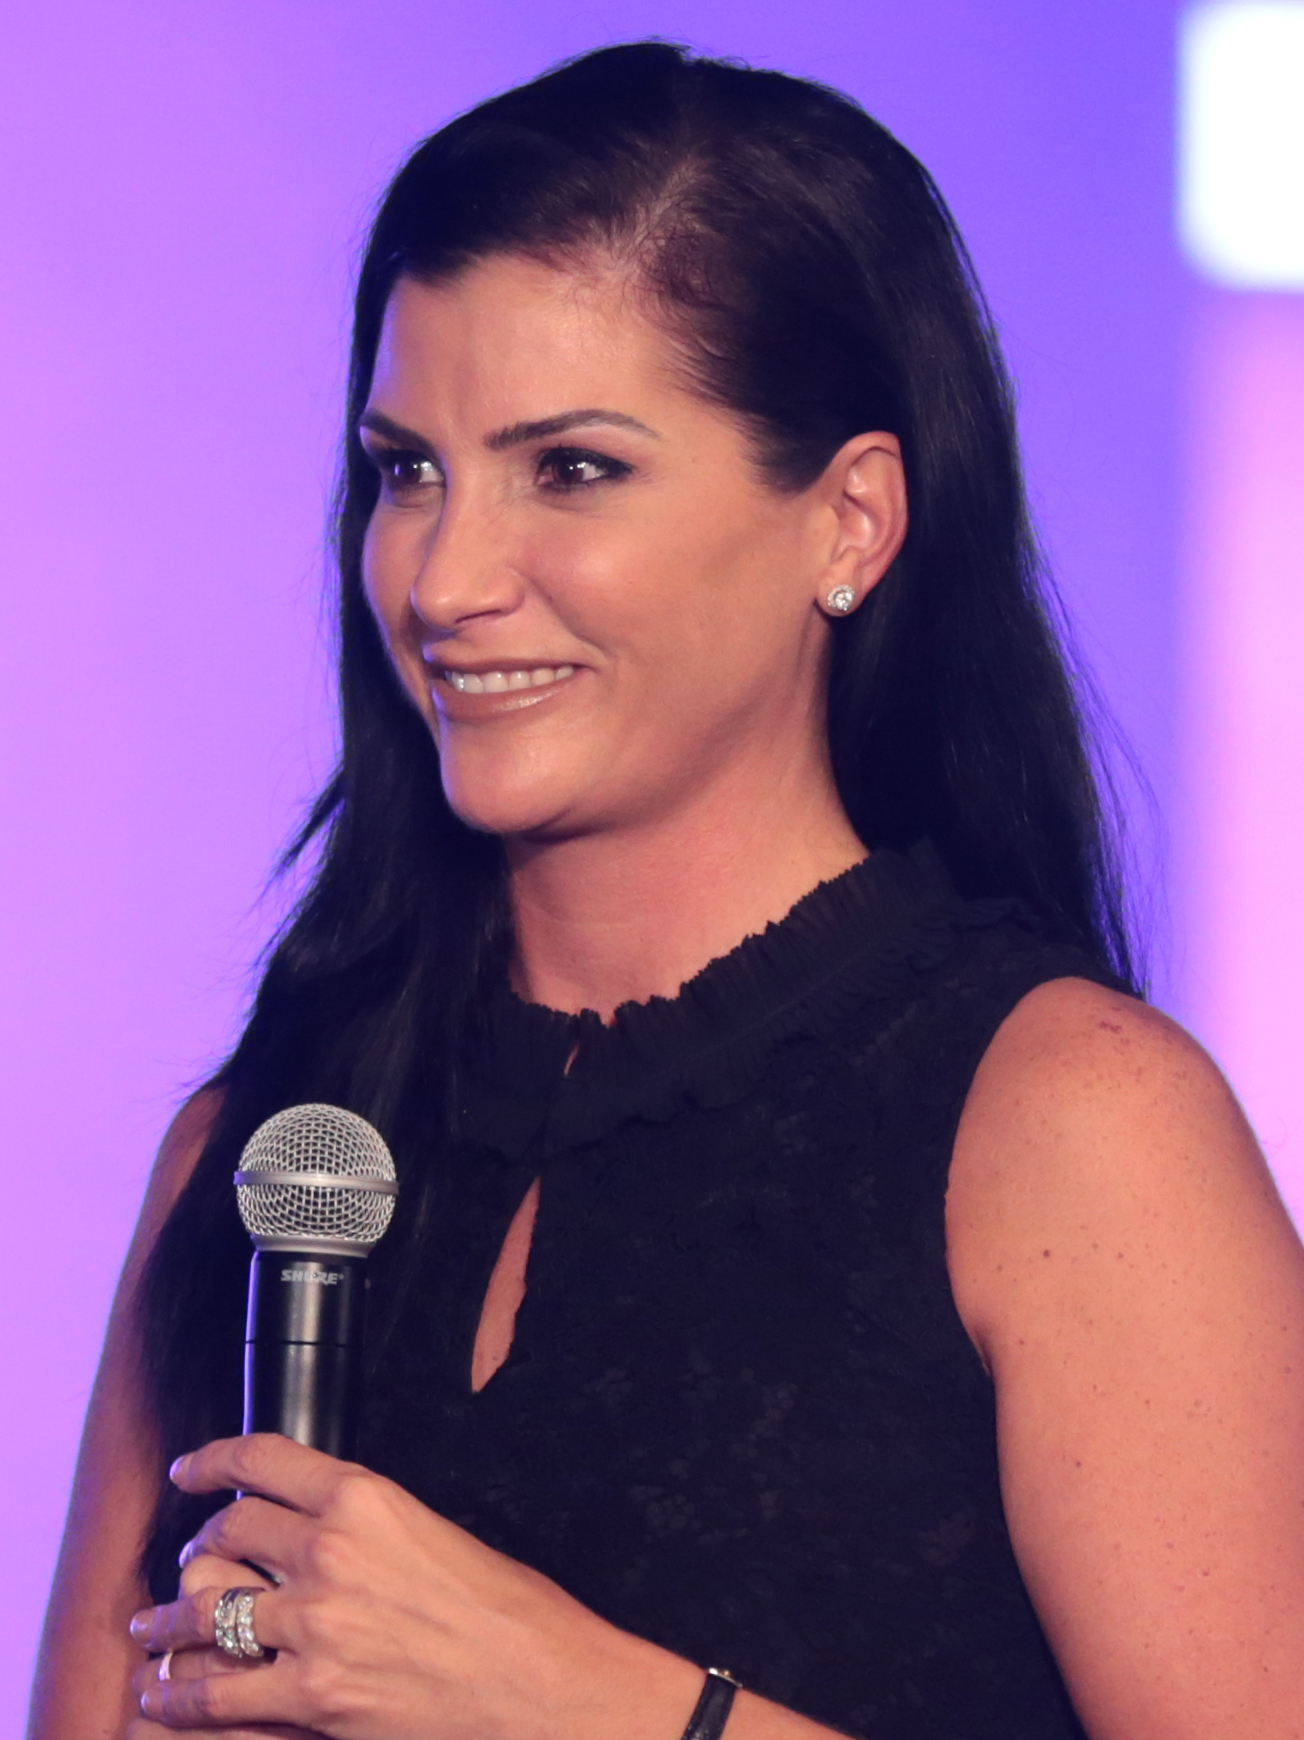 The 42-year old daughter of father (?) and mother(?) Dana Loesch in 2021 photo. Dana Loesch earned a 0.9 million dollar salary - leaving the net worth at  million in 2021